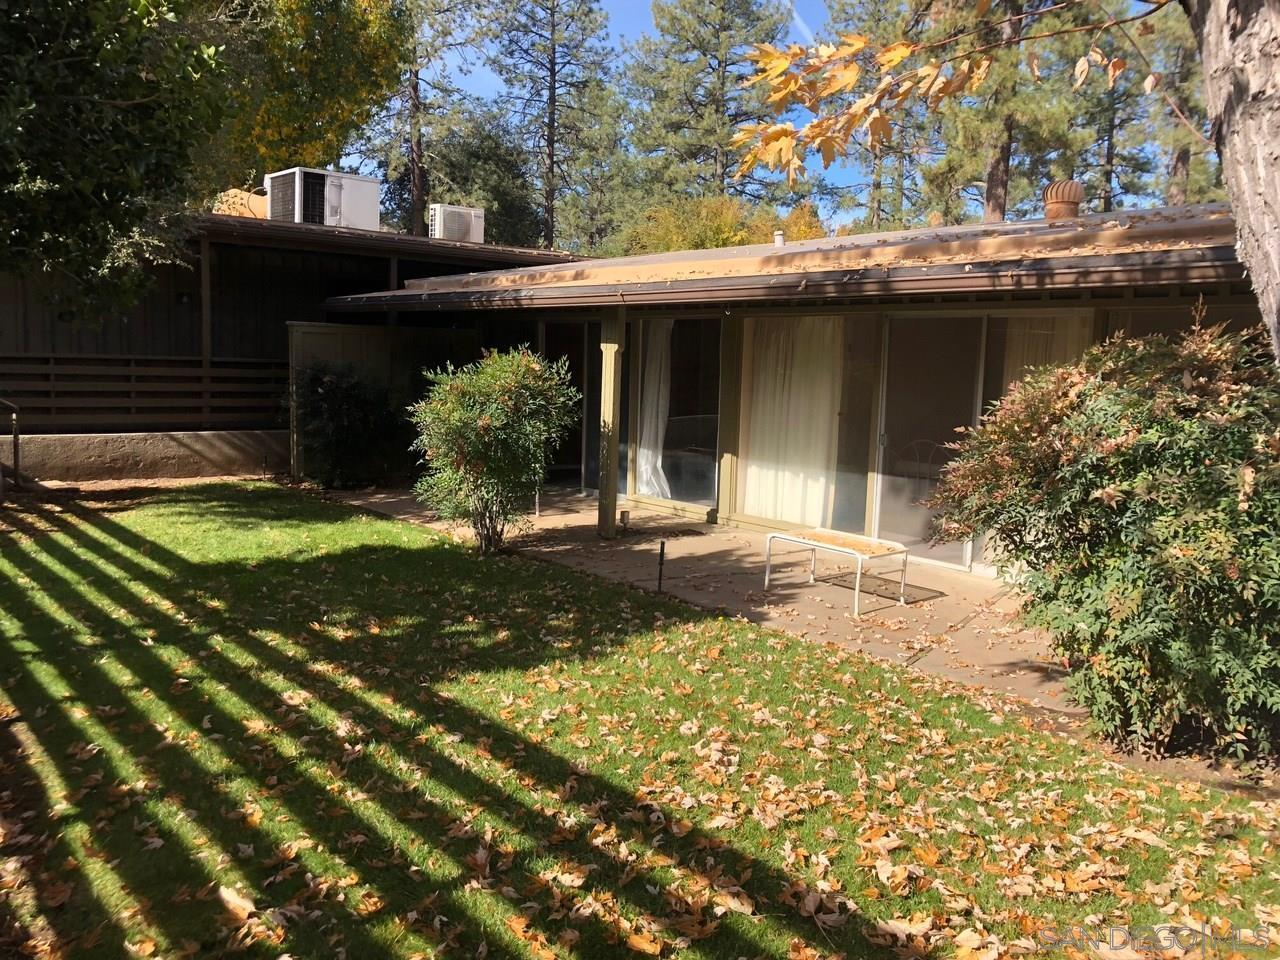 28857 Old Highway 80 Unit 14 15, Pine Valley, CA 91962 ...